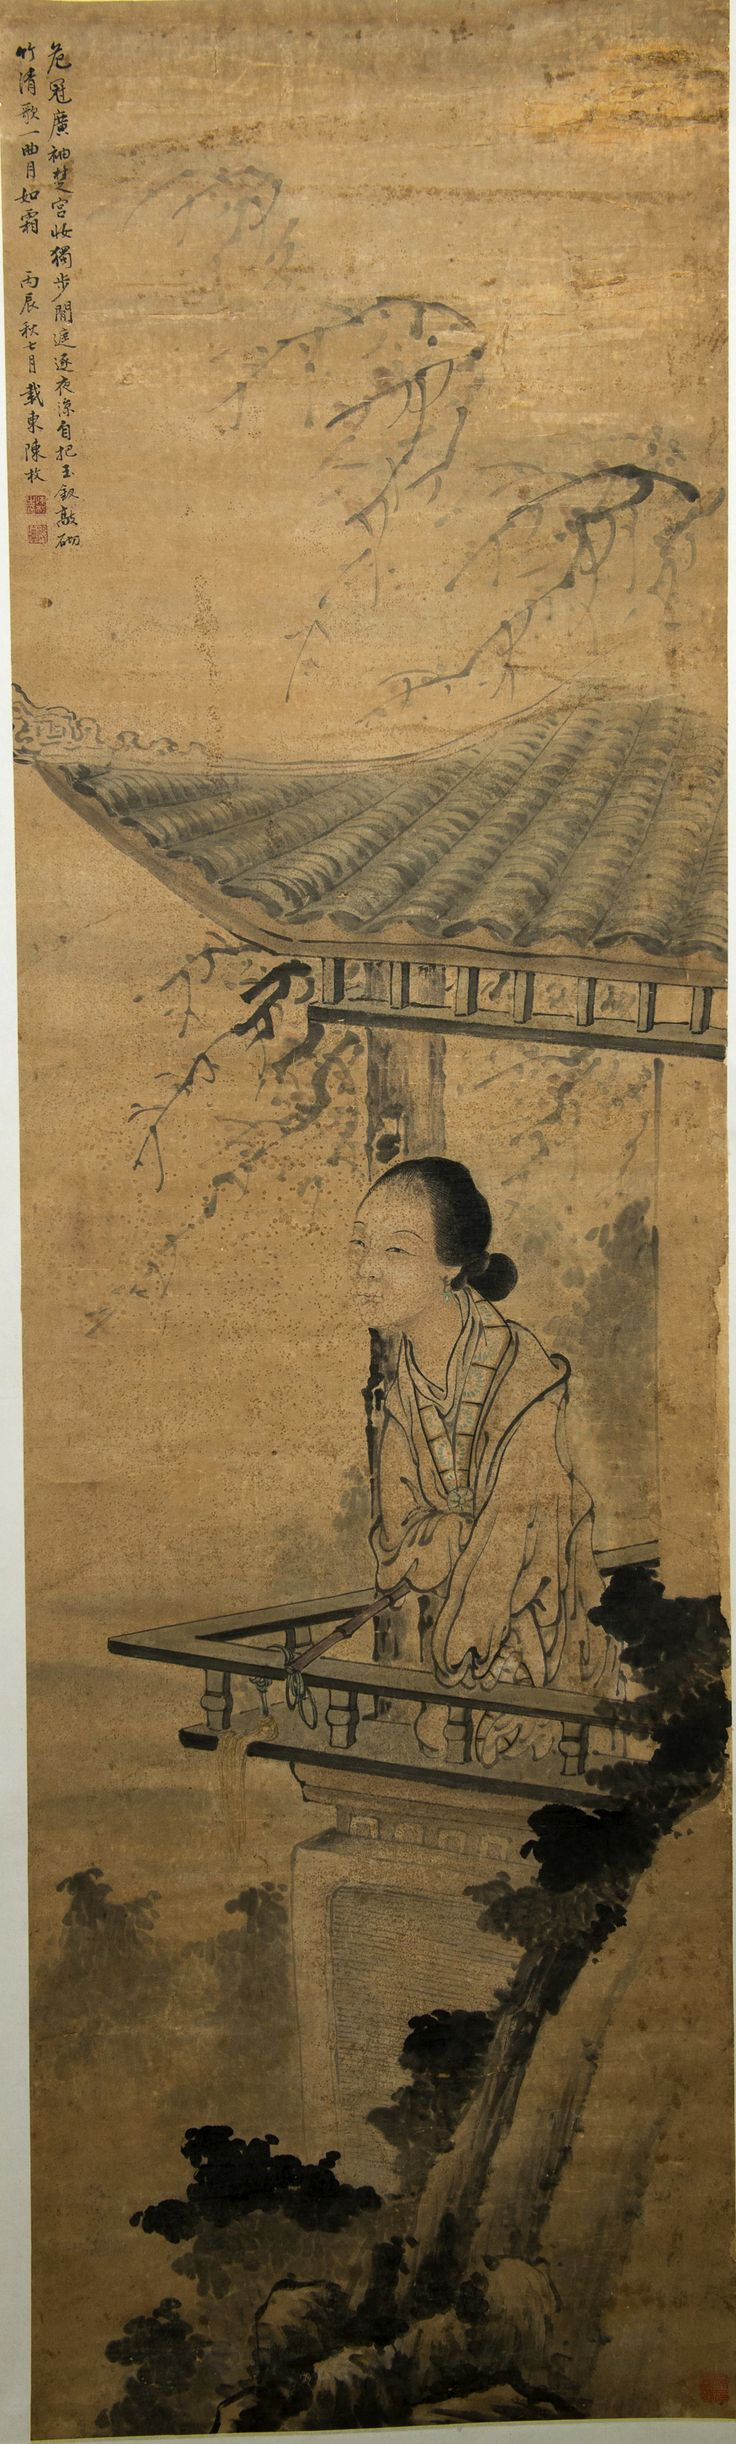 Lot 28 Painting of Lady in Courtyard Signed Chen Mei